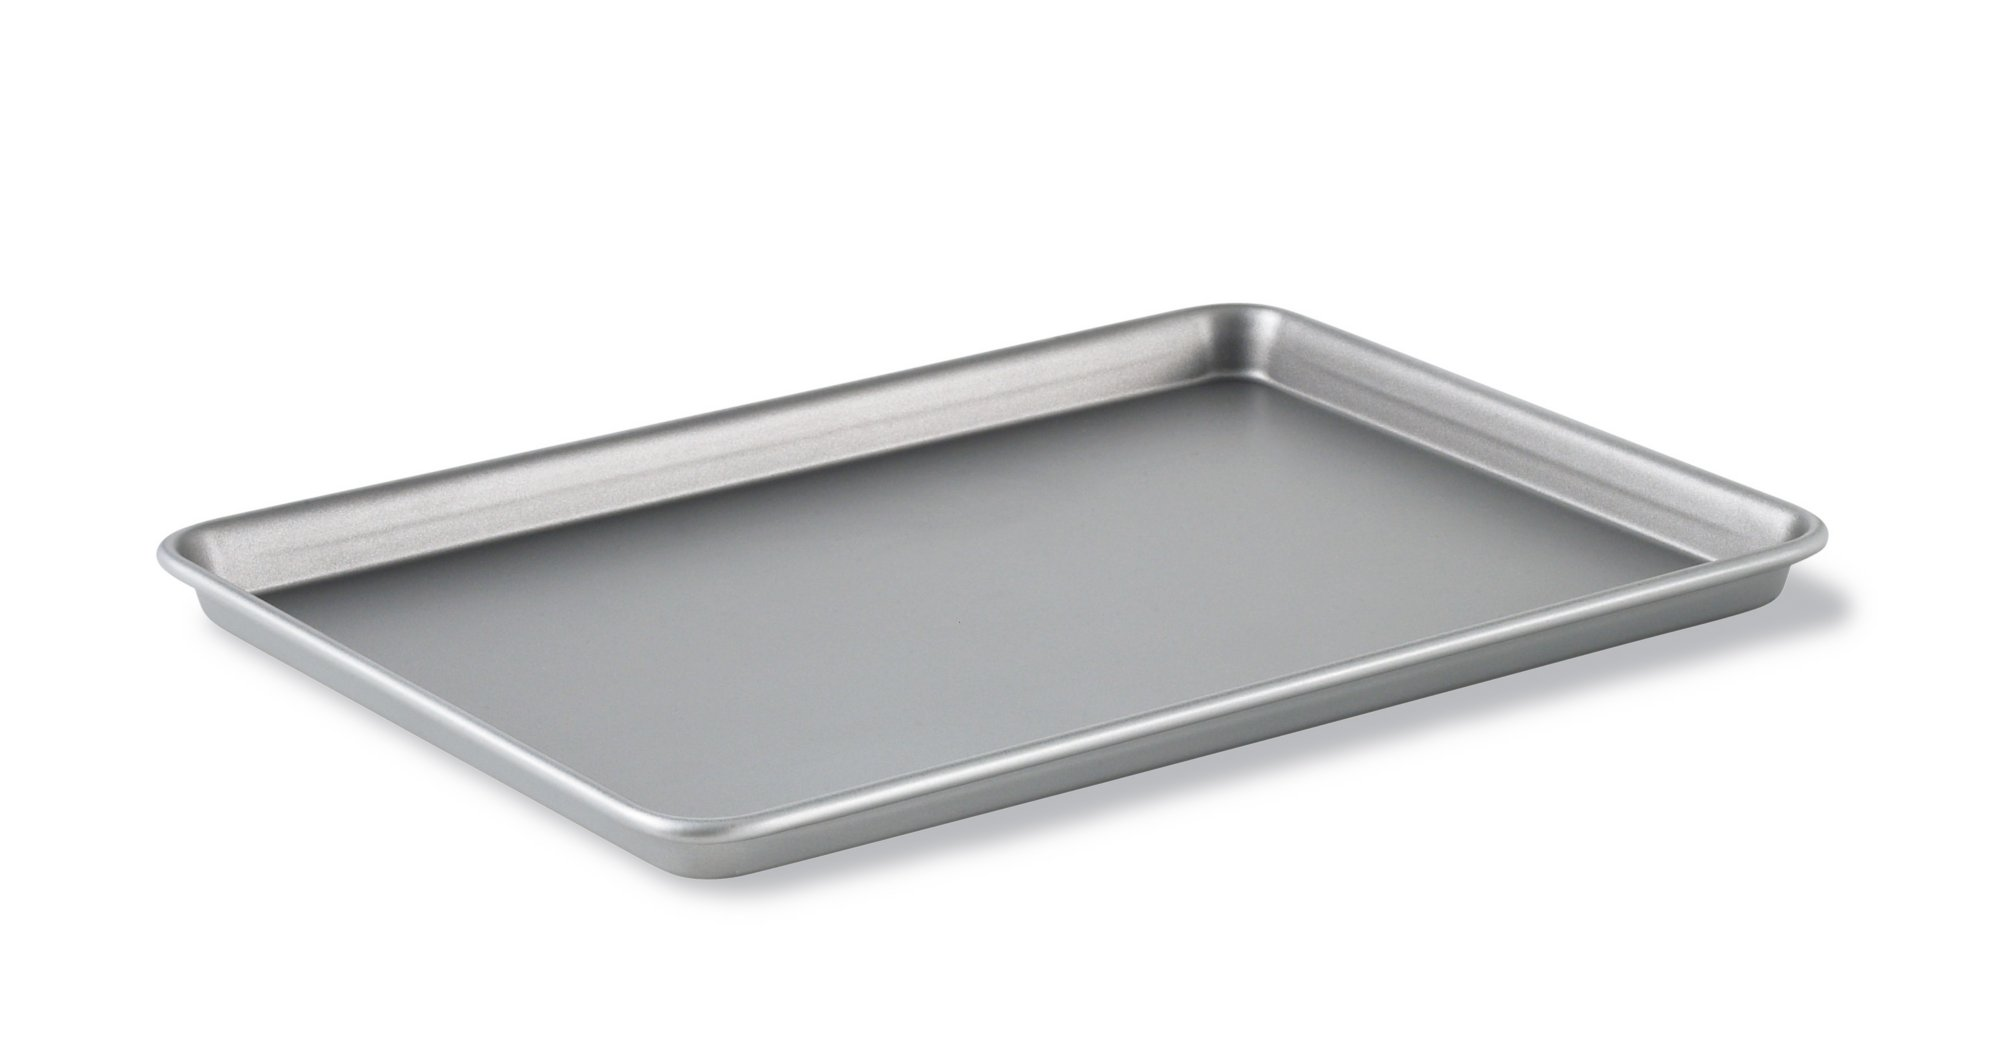 Calphalon Nonstick Bakeware 12-in. x 17-in. Baking Sheet